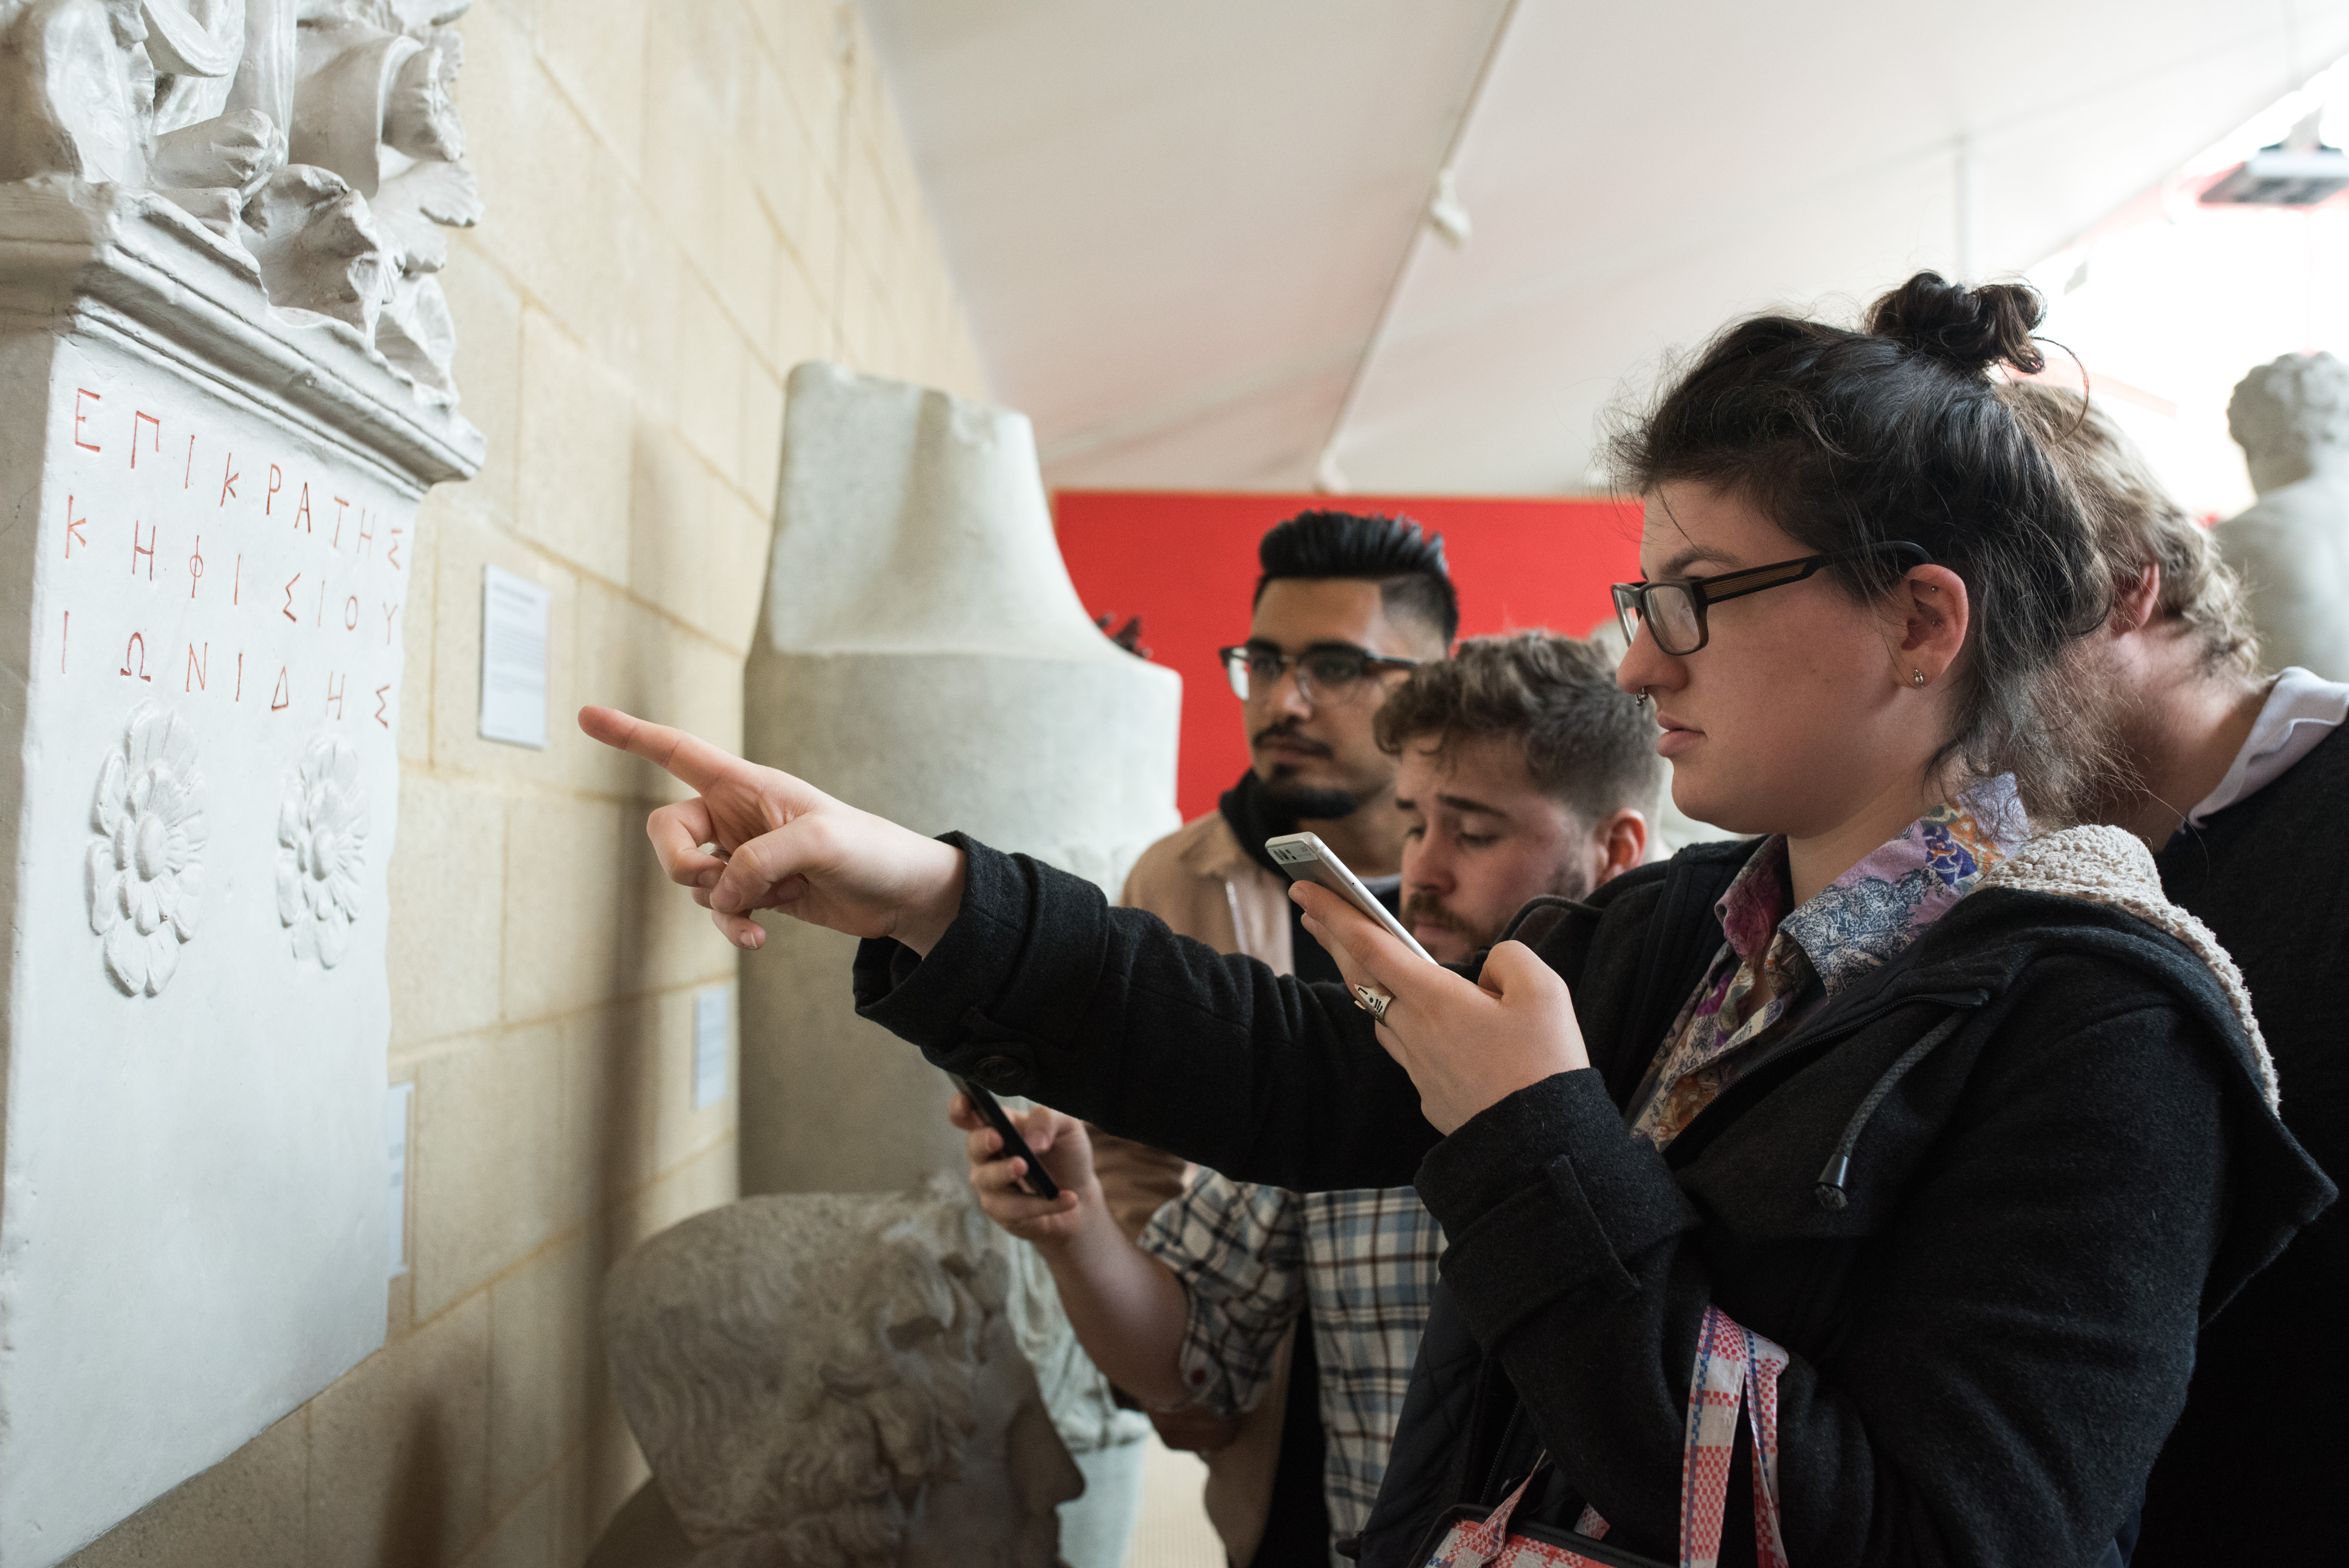 Four players holding their phones look closely at an inscription on the wall of the Museum of Classical Archaeology